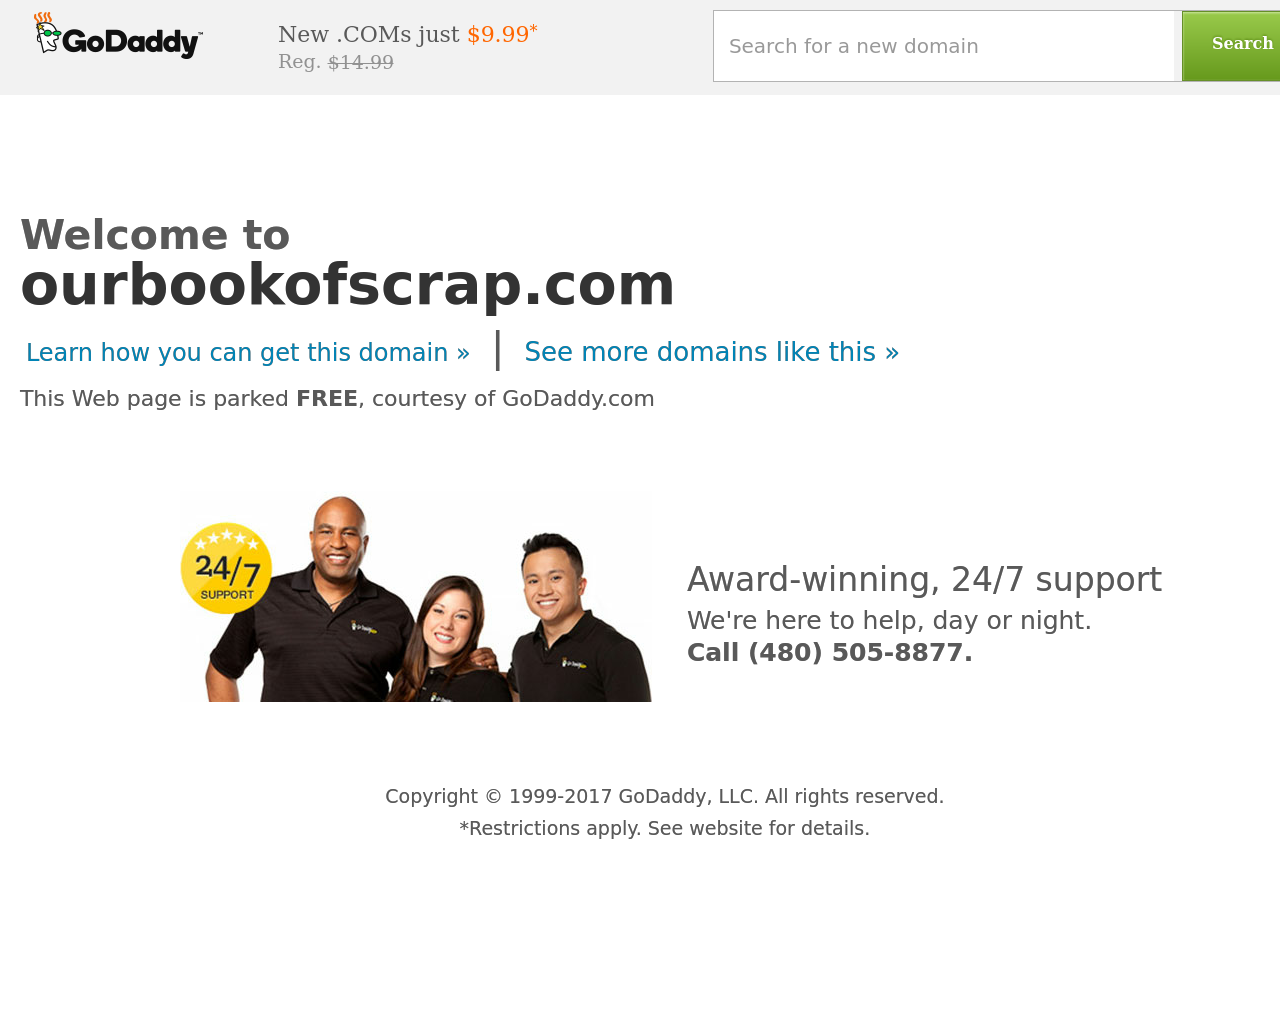 Our-Book-Of-Scrap-Advertising-Reviews-Pricing